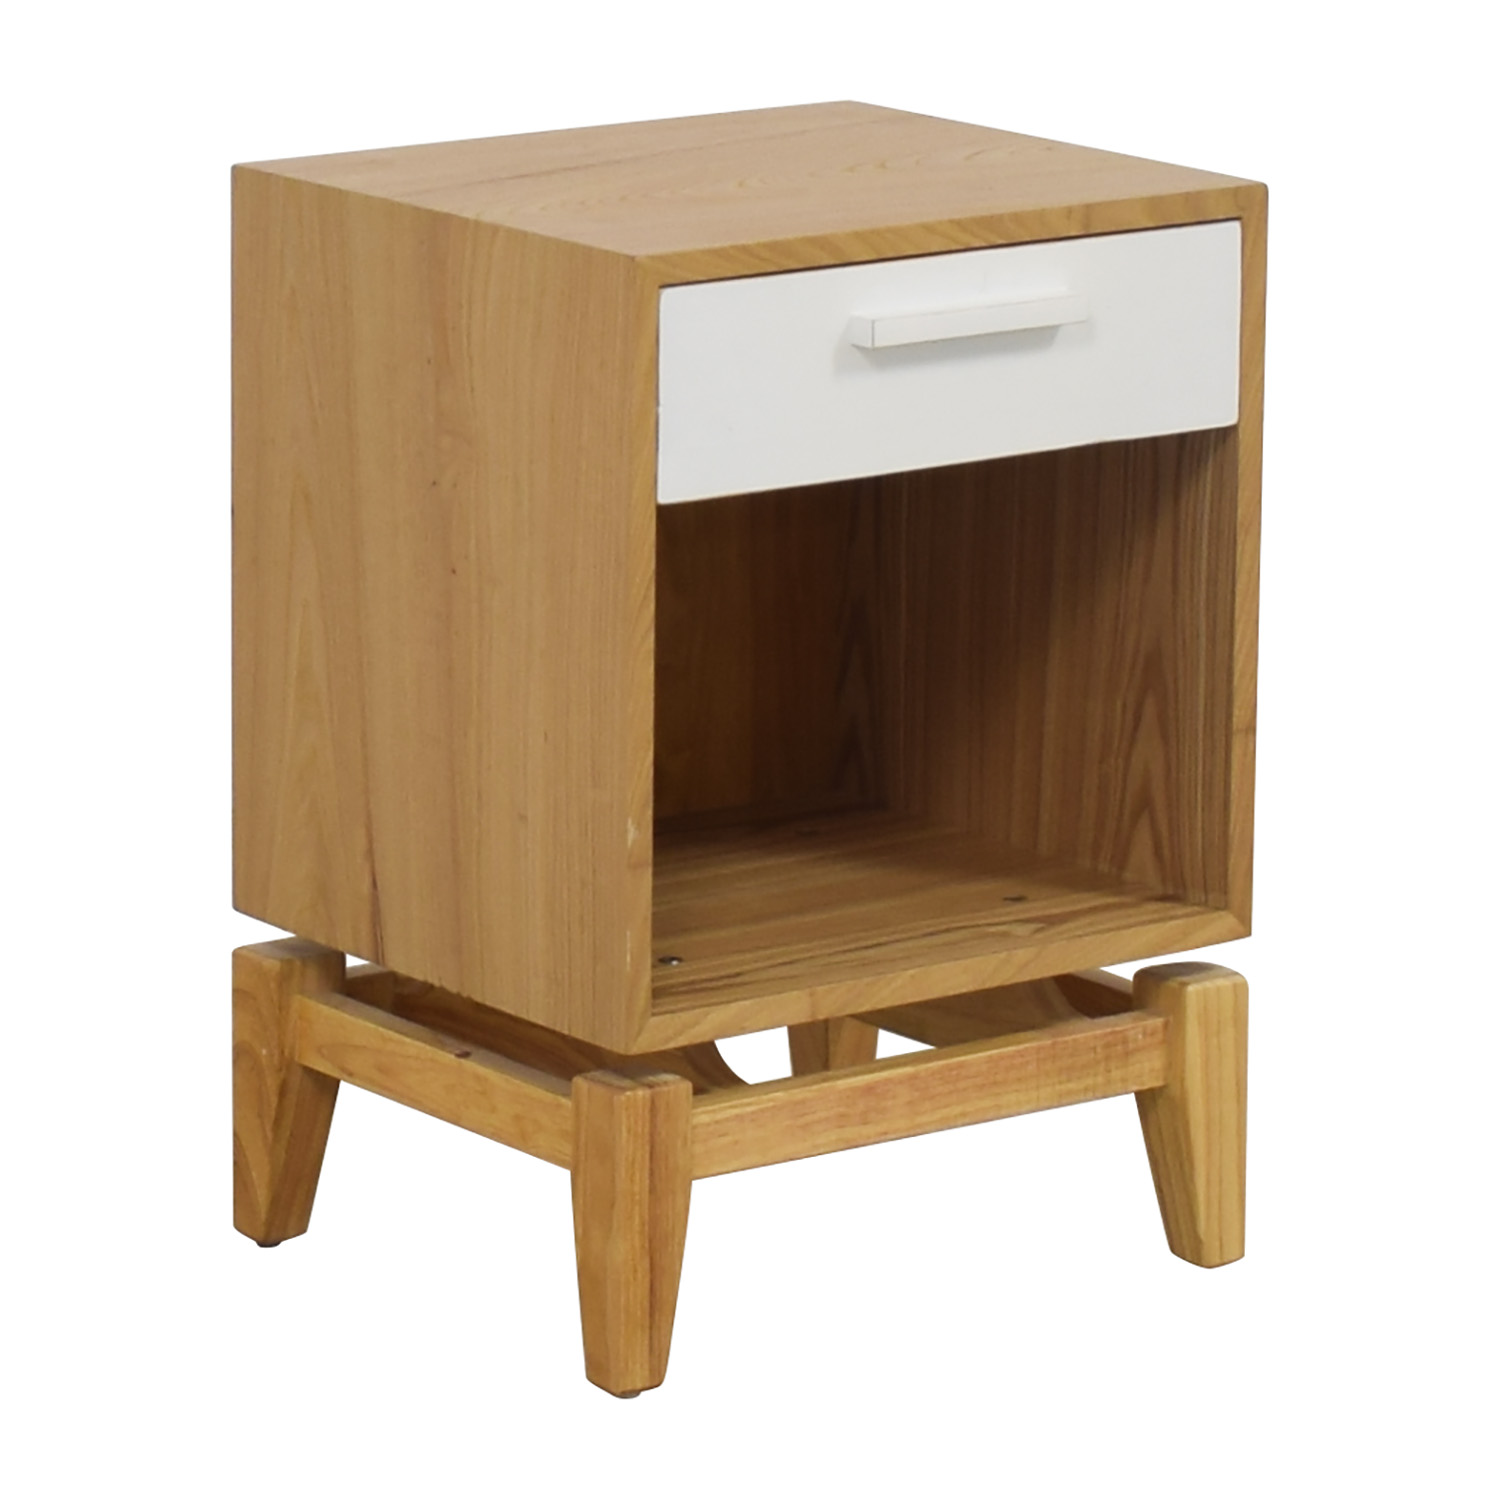 buy Joss & Main Joss & Main Natural and White Single Drawer End Table online